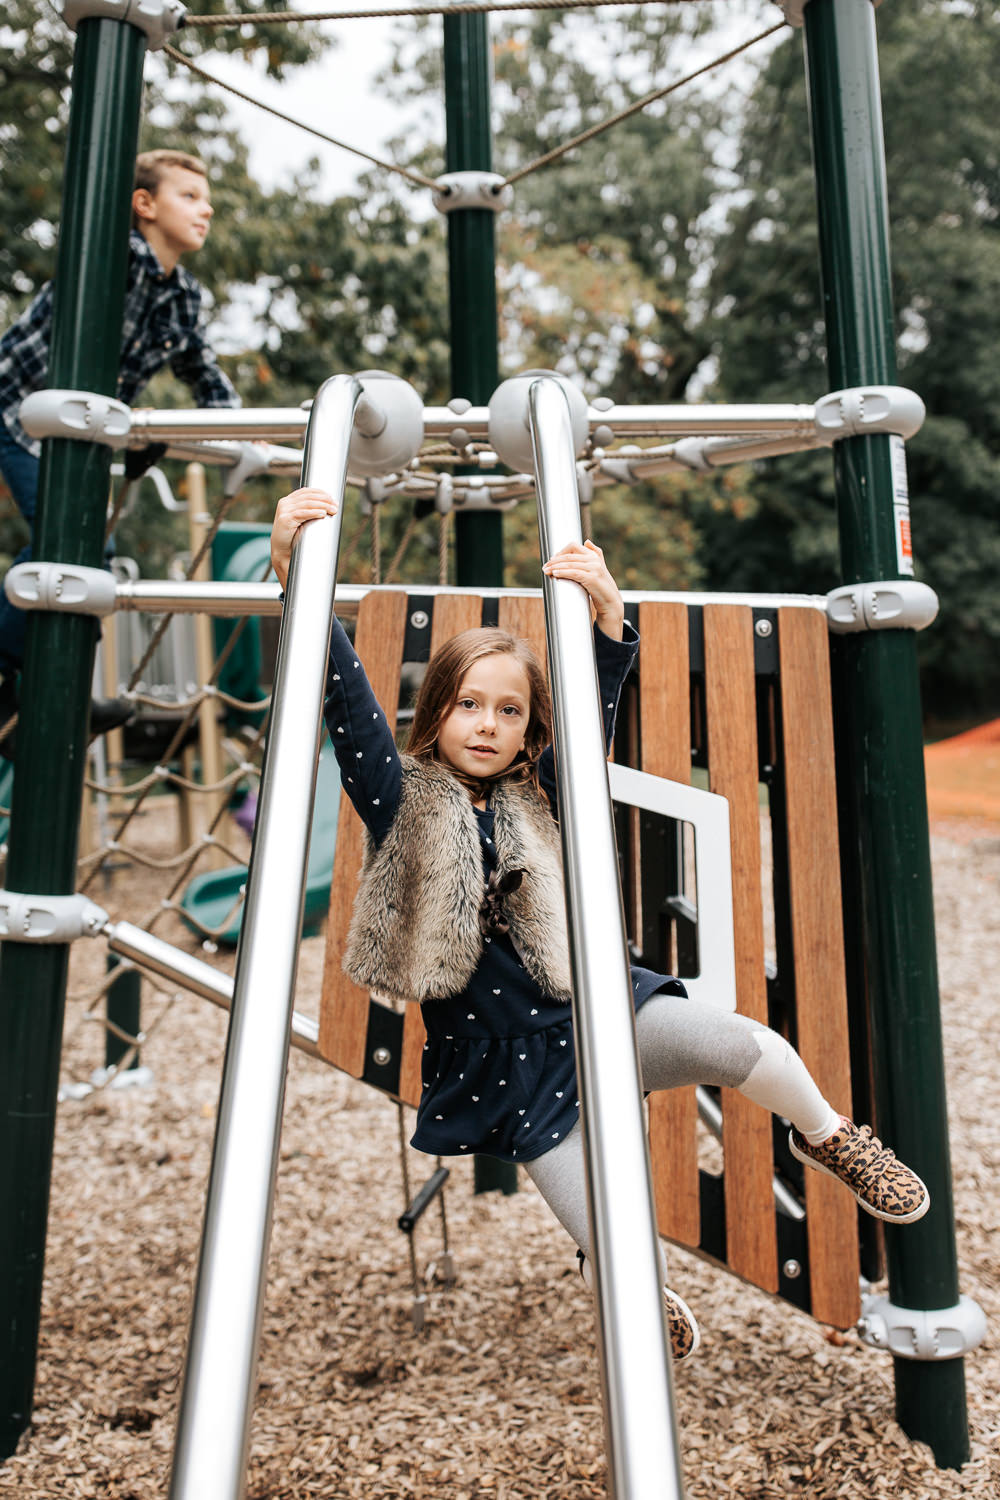 7 year old girl with light brown hair in dress and fur vest swinging from jungle gym at park, and looking seriously at camera -York Region Lifestyle Photos